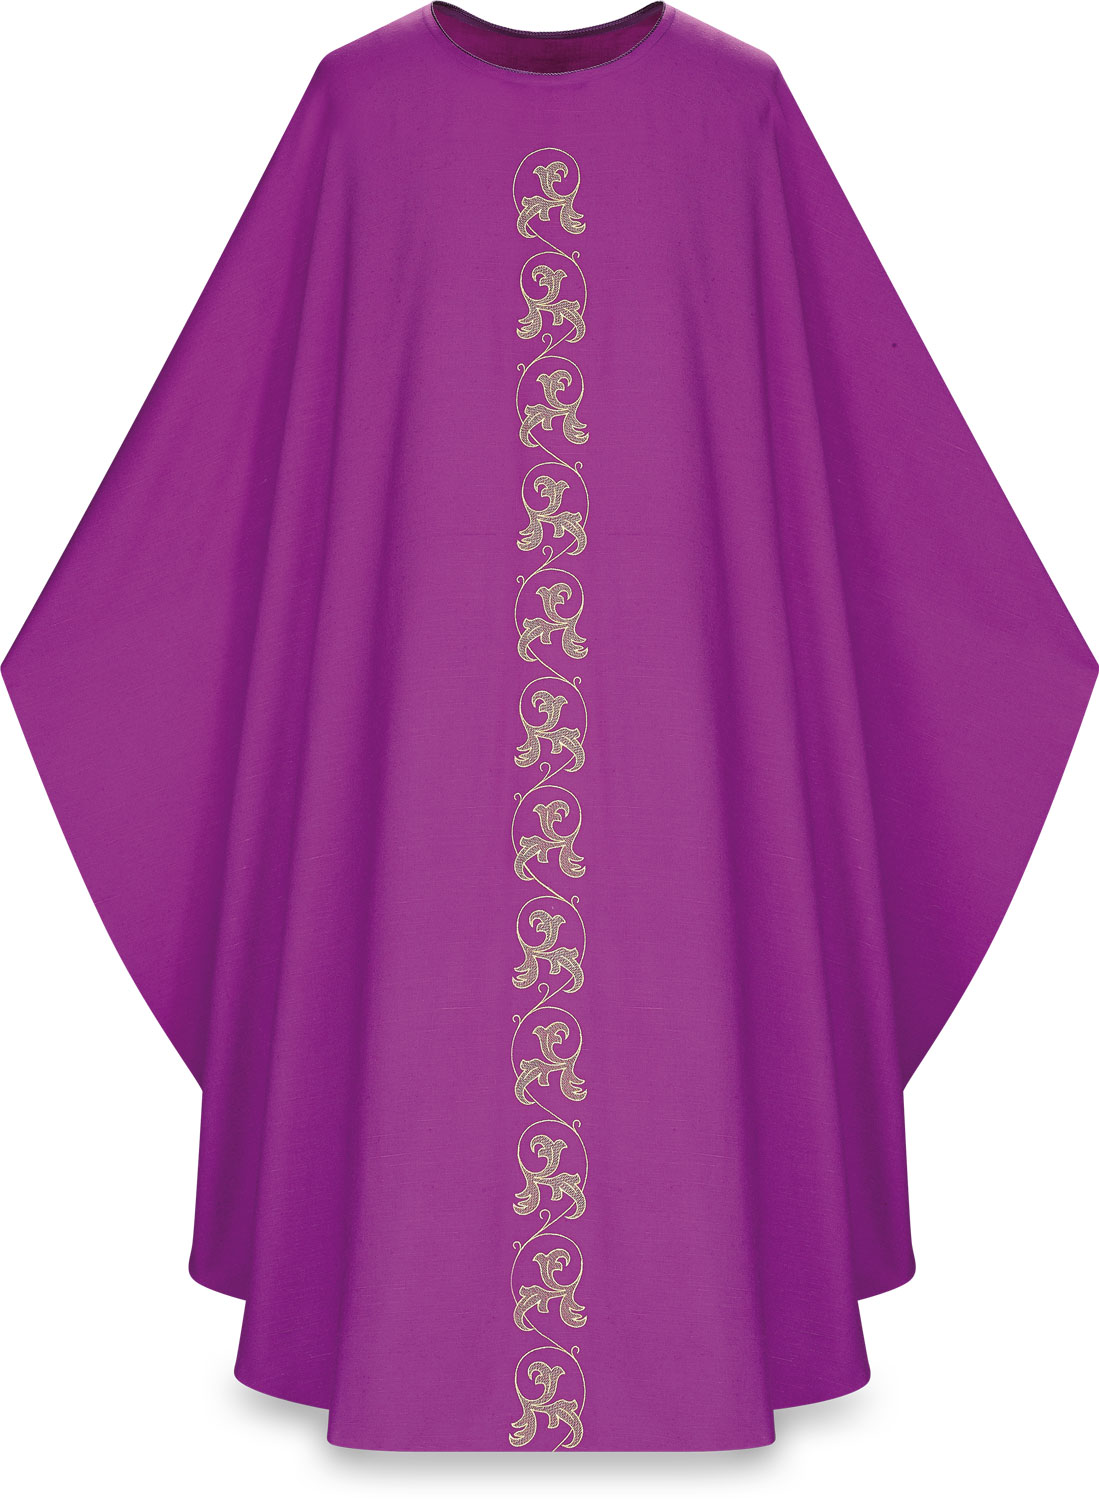 Chasuble | Purple | 5224 | Slabbinck